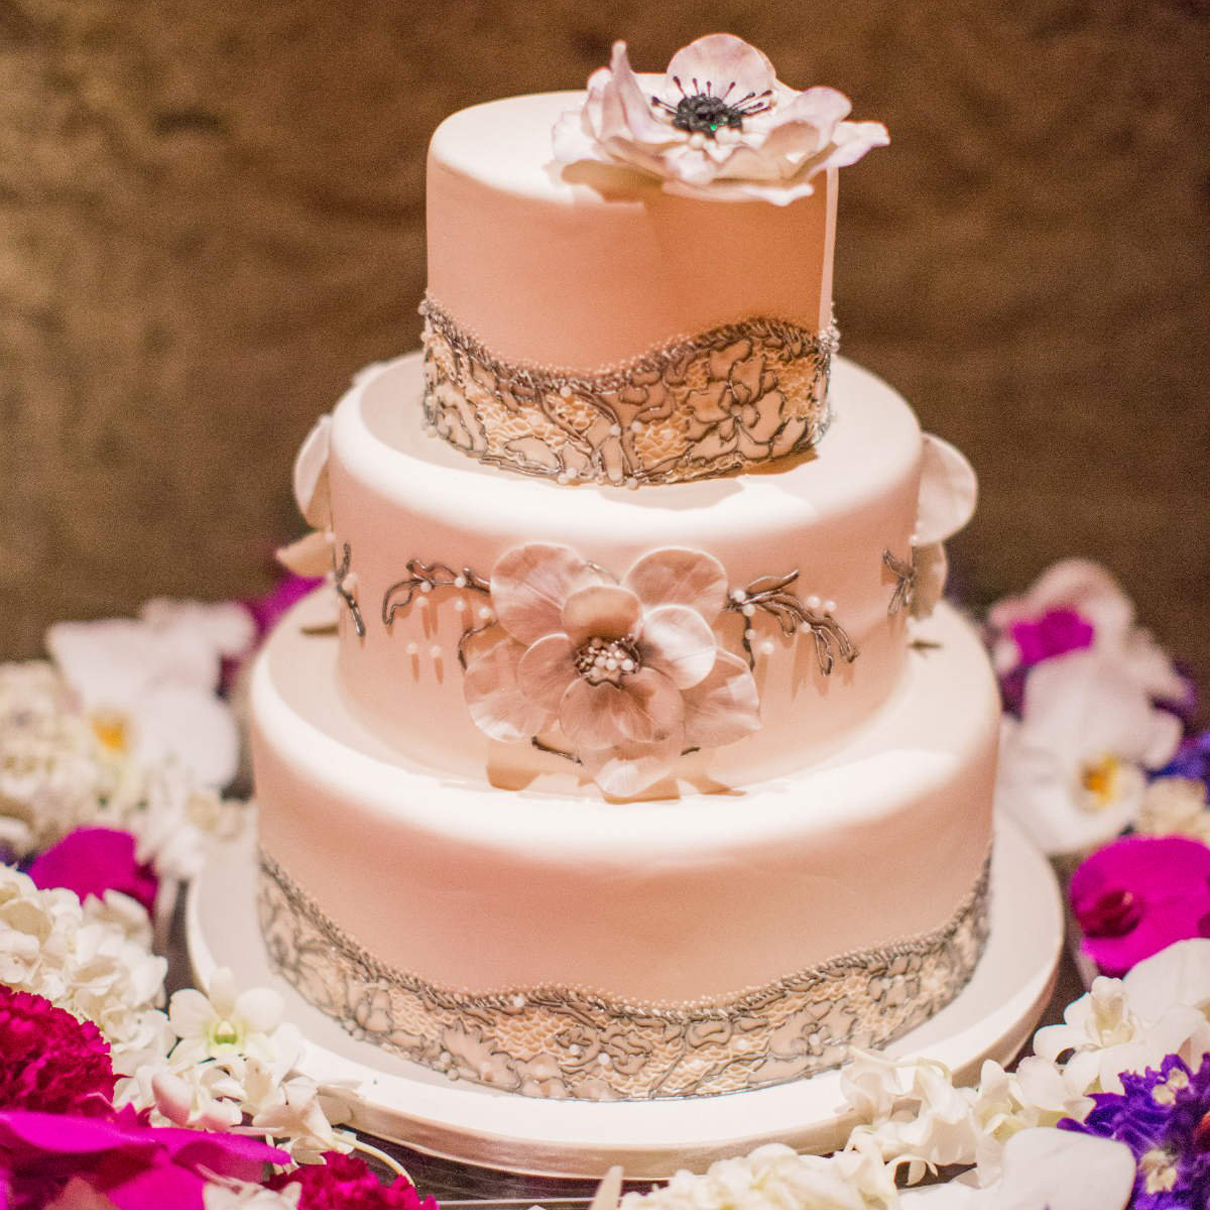 Wedding Cake Cost Per Serving